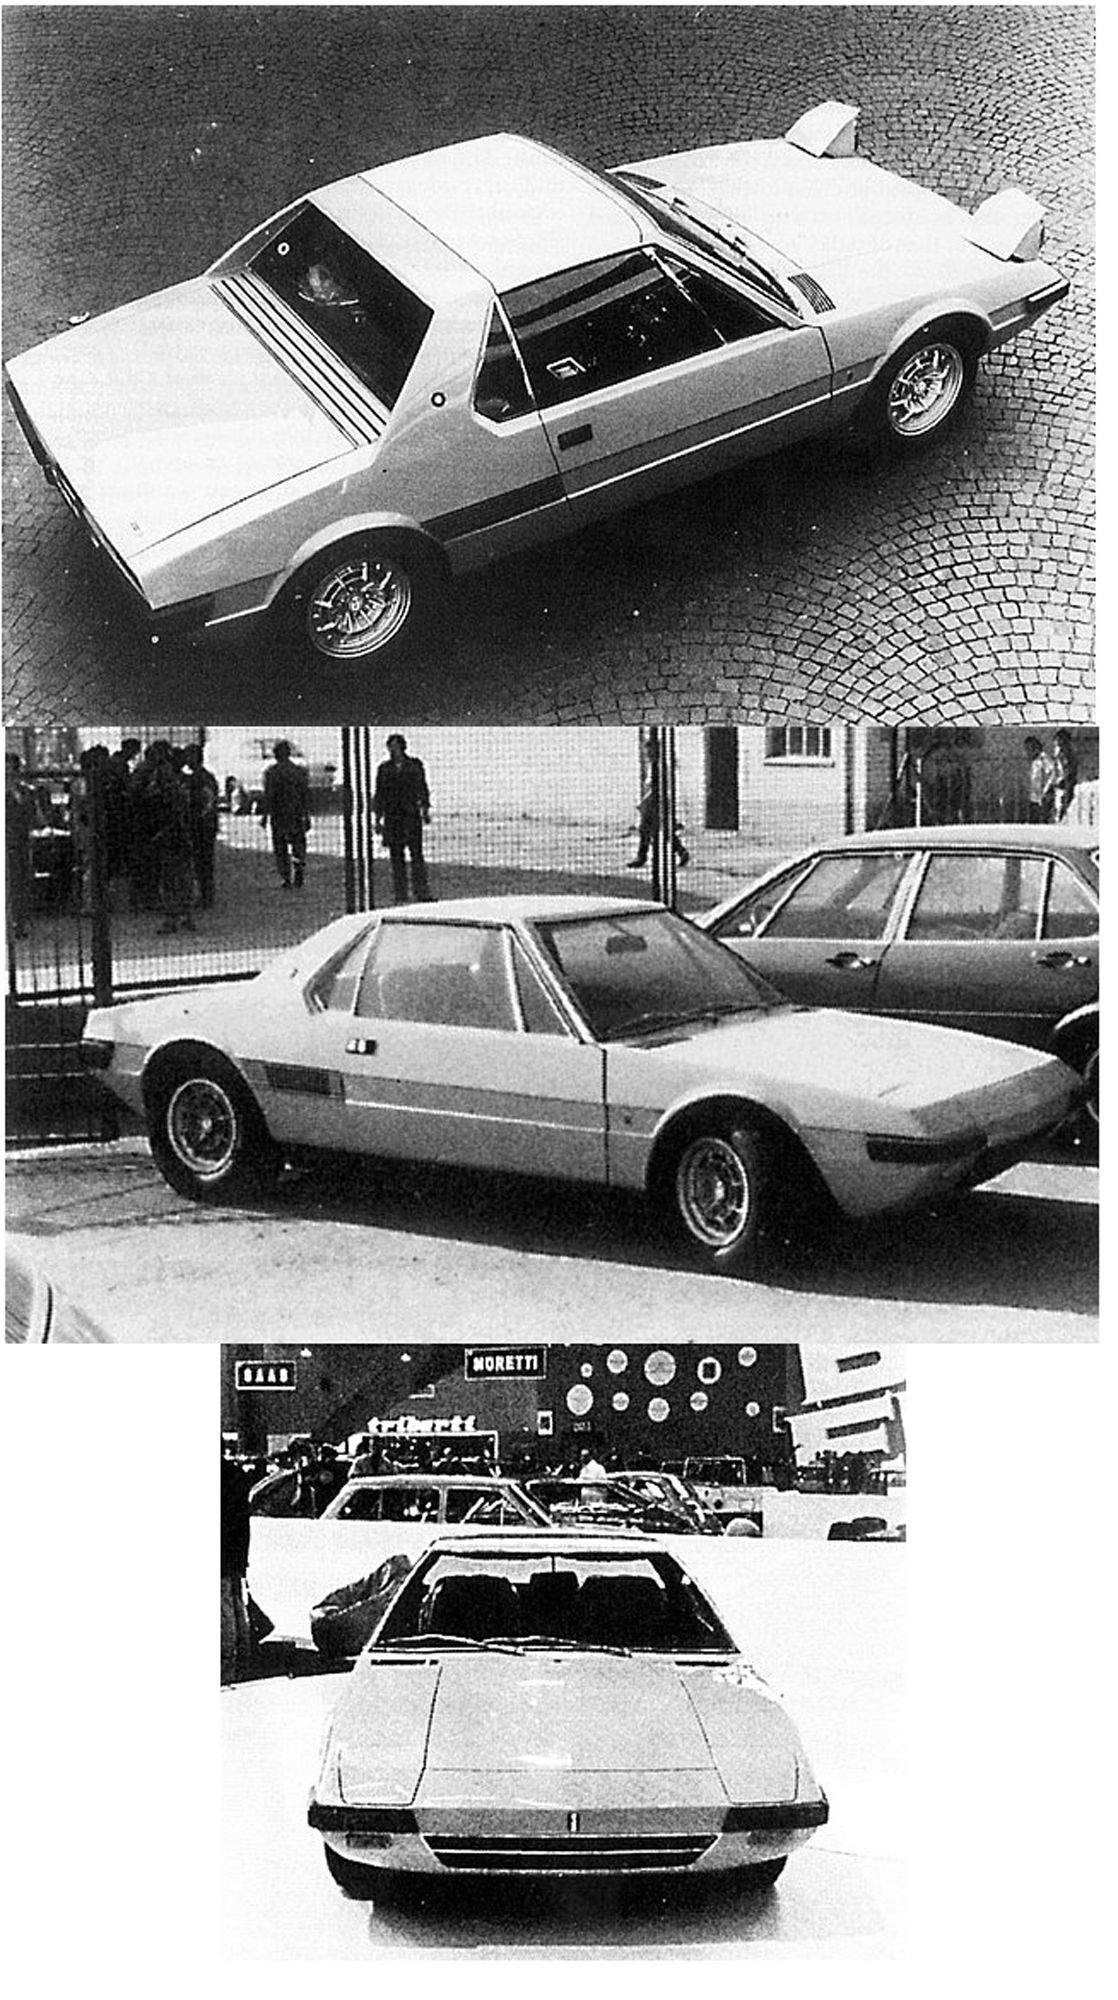 Og 1971 De Tomaso 1600gt This Prototype Also Designed By Tom Tjaarda Was Obviously Copied From The Fiat X1 9 But Concept Cars Vintage Vintage Concepts Fiat